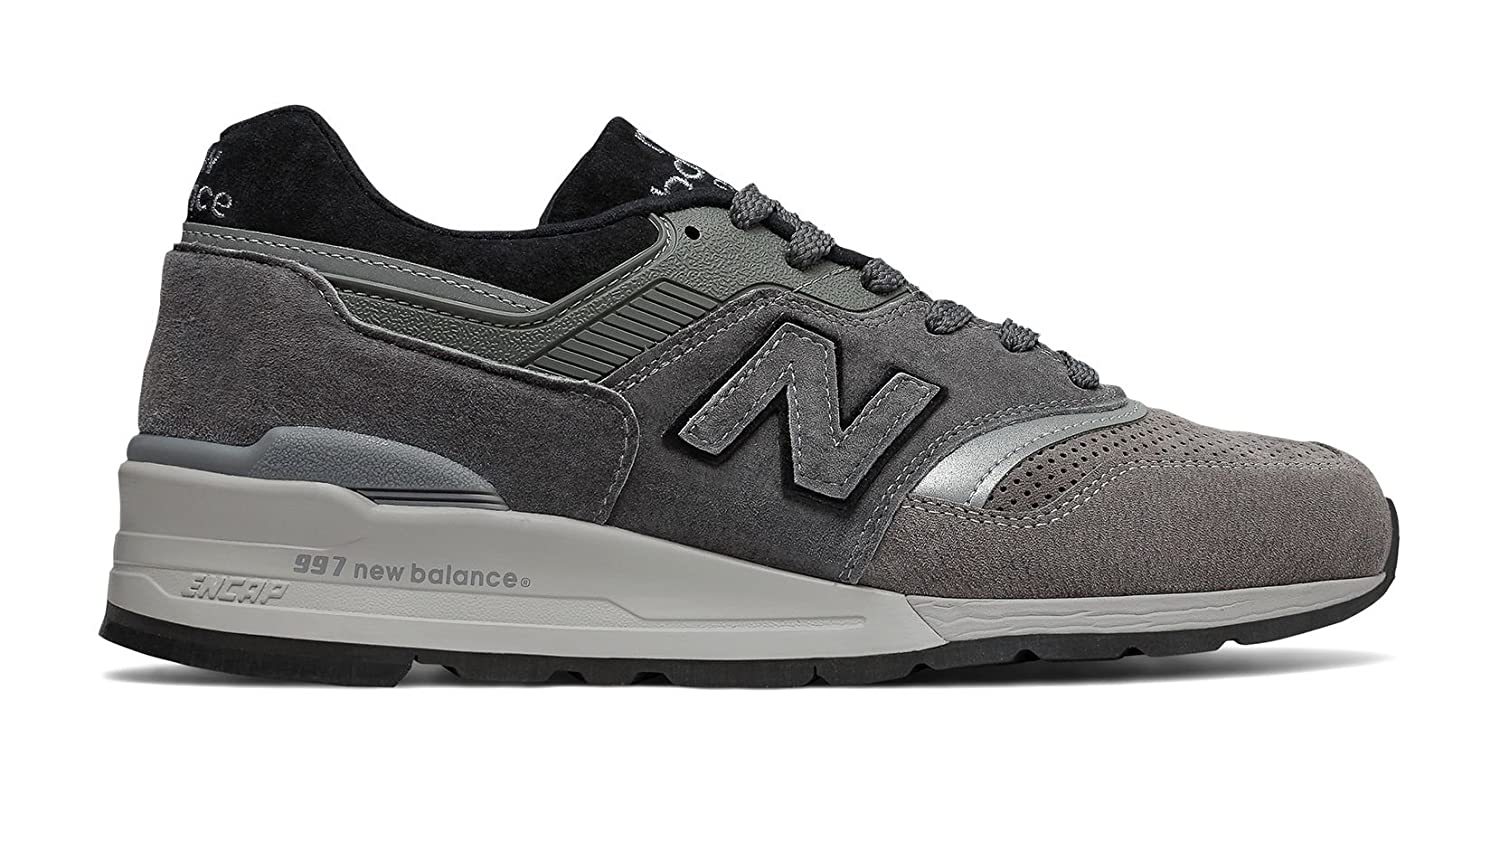 New Balance Men's M997brk B01N2AHBLI 8 D(M) US|Grey